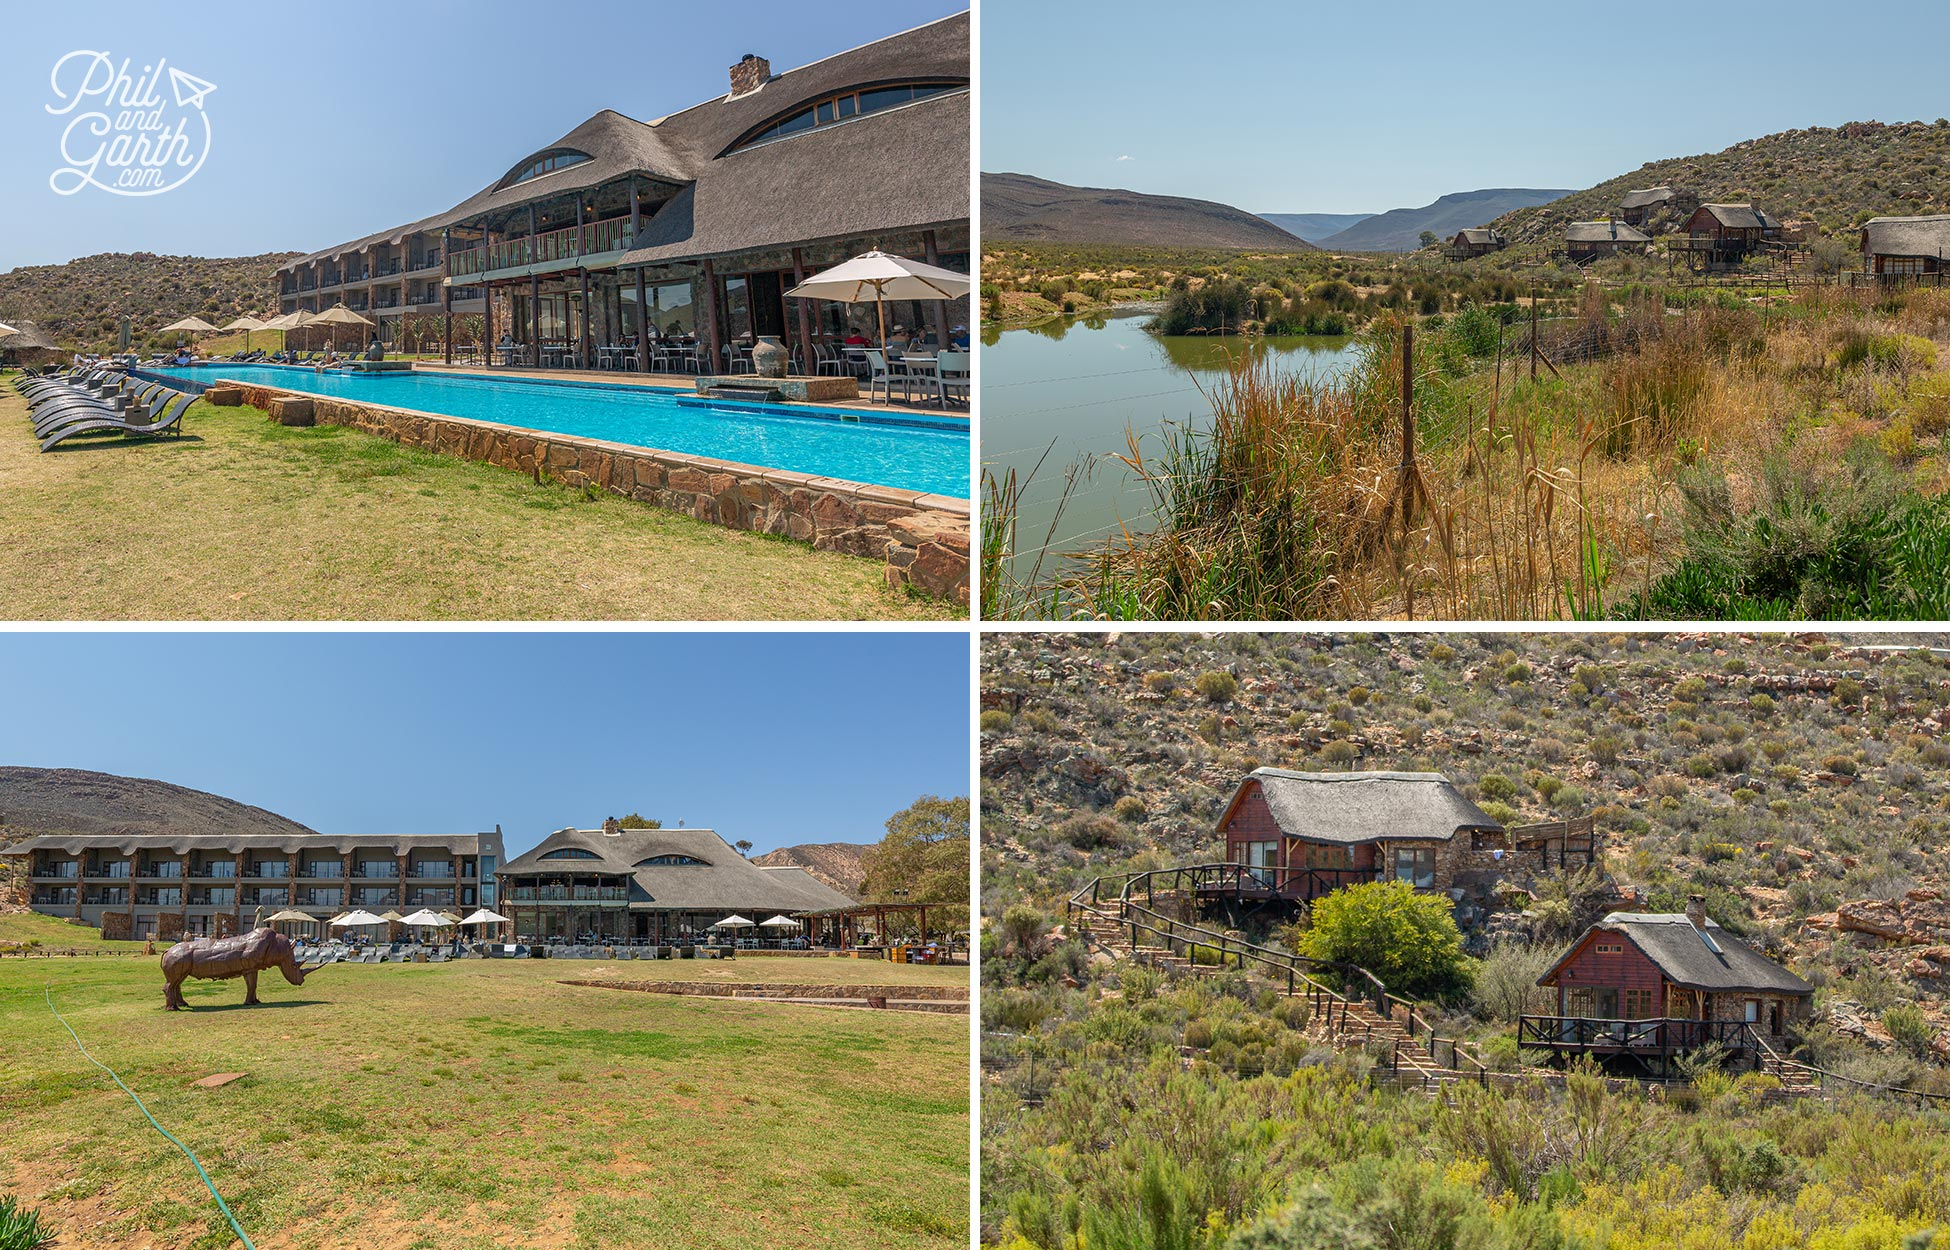 The Aquila Private Game Reserve - A private game reserves near cape town